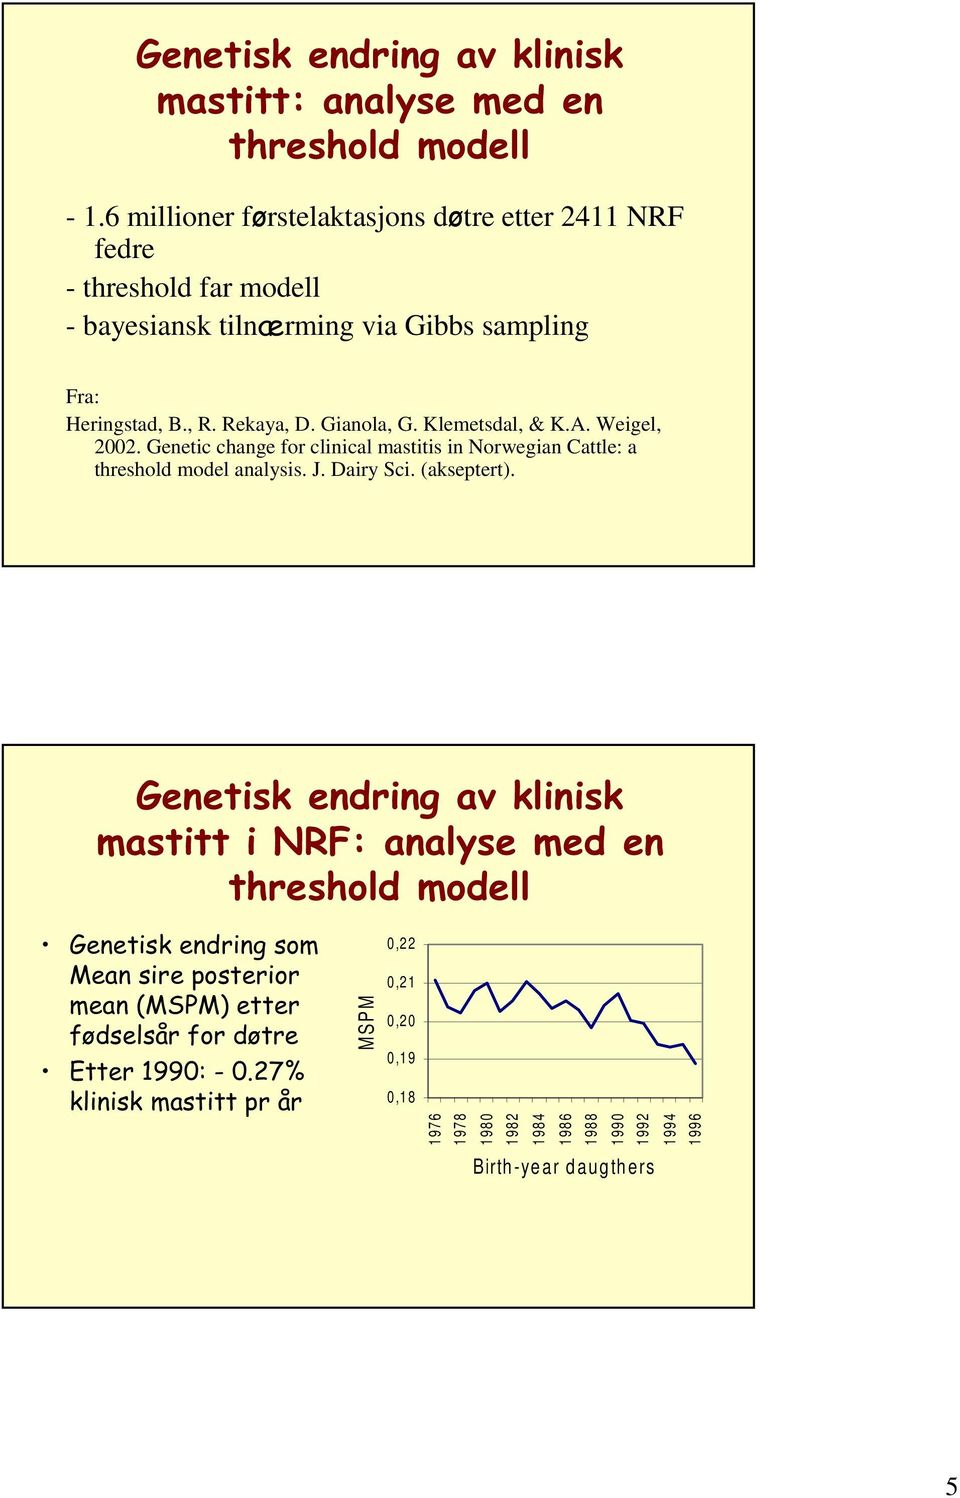 Gianola, G. Klemetsdal, & K.A. Weigel, 2002. Genetic change for clinical mastitis in Norwegian Cattle: a threshold model analysis. J. Dairy Sci. (akseptert).